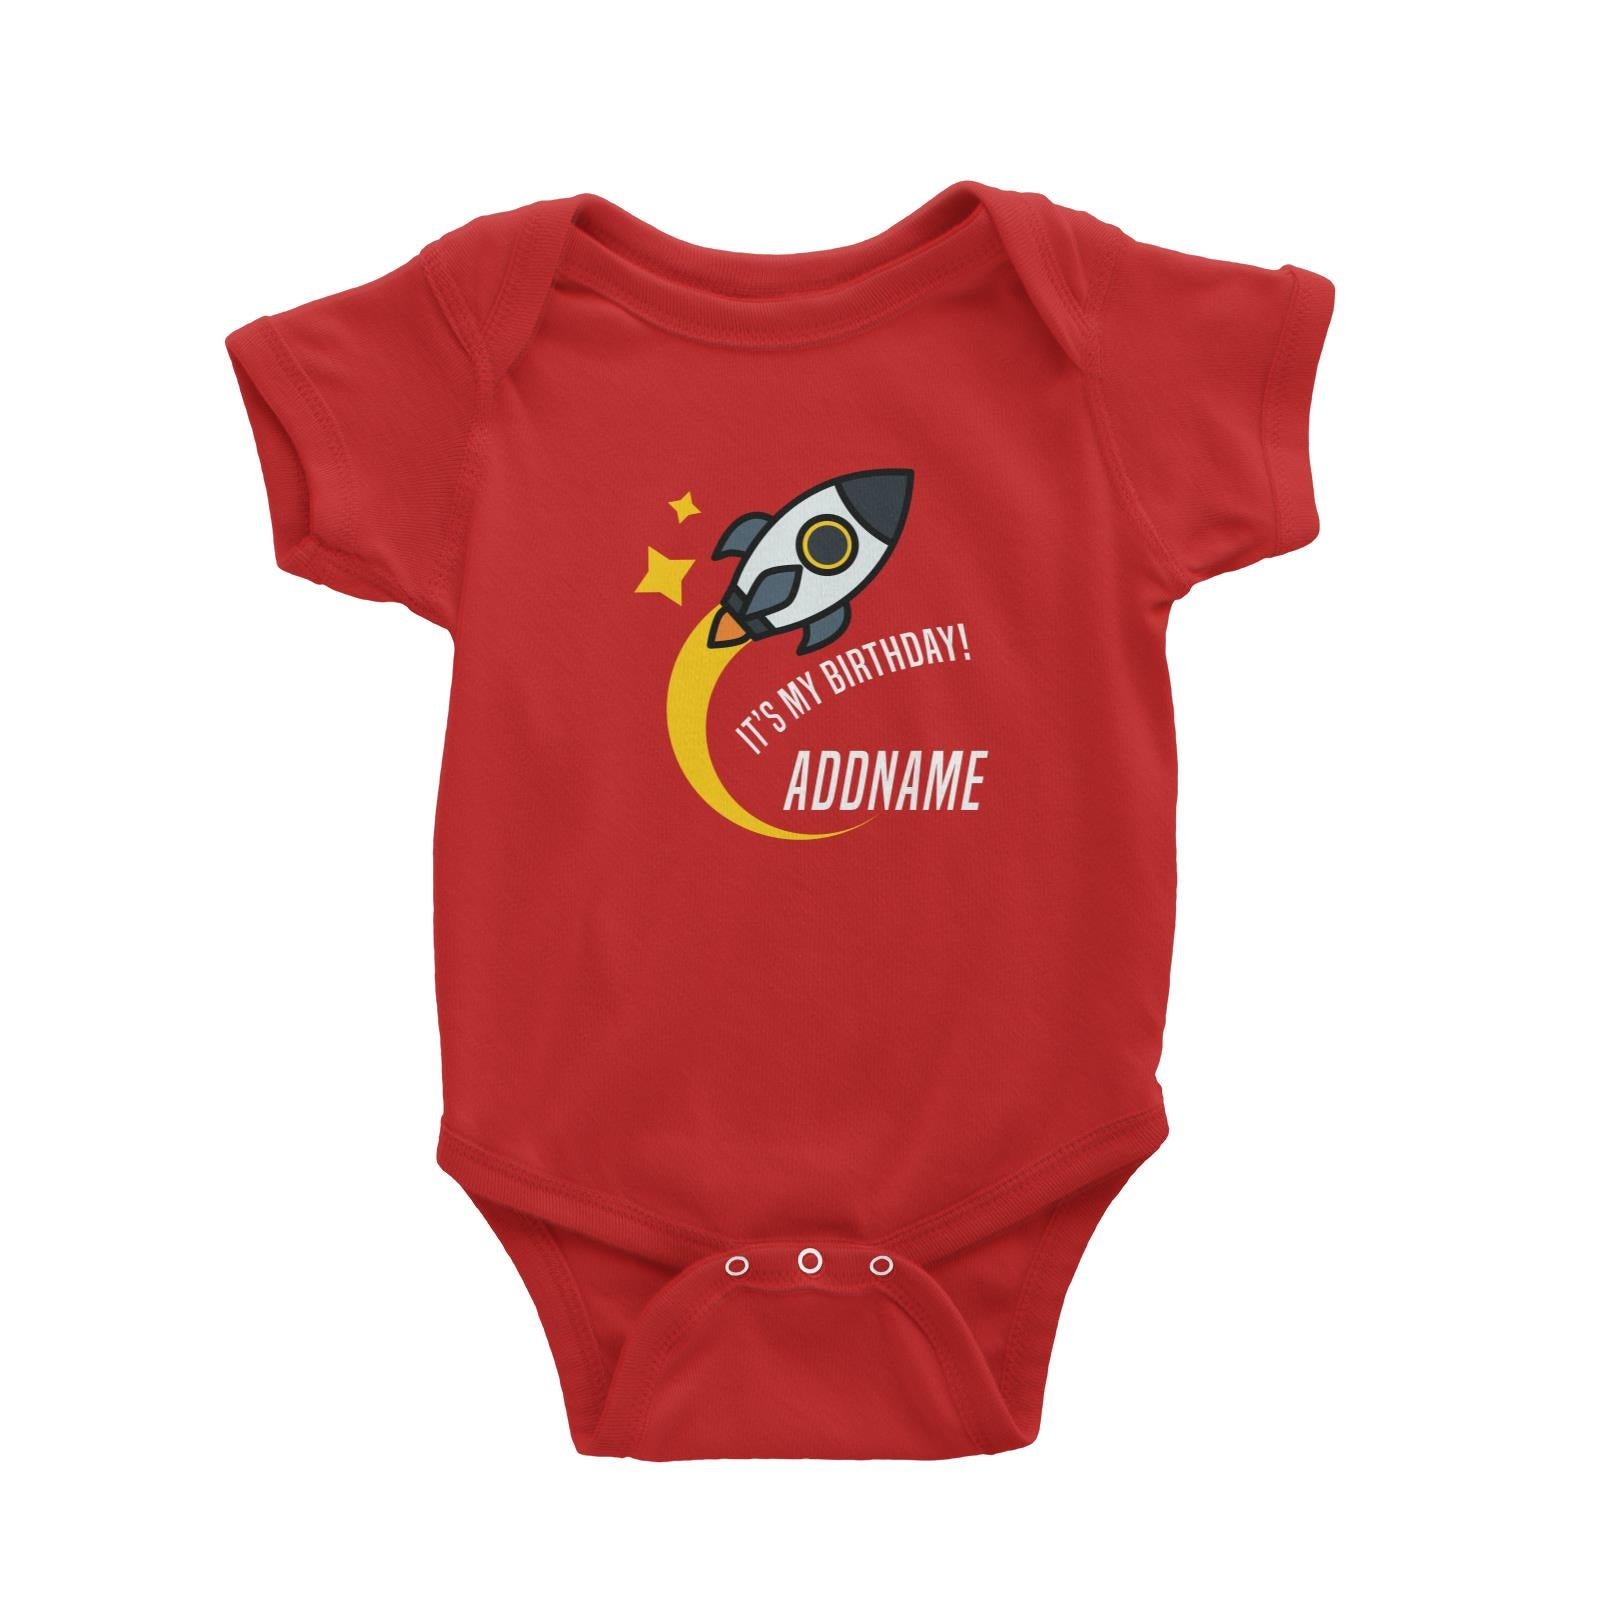 Birthday Flying Rocket To Galaxy It's My Birthday Addname Baby Romper